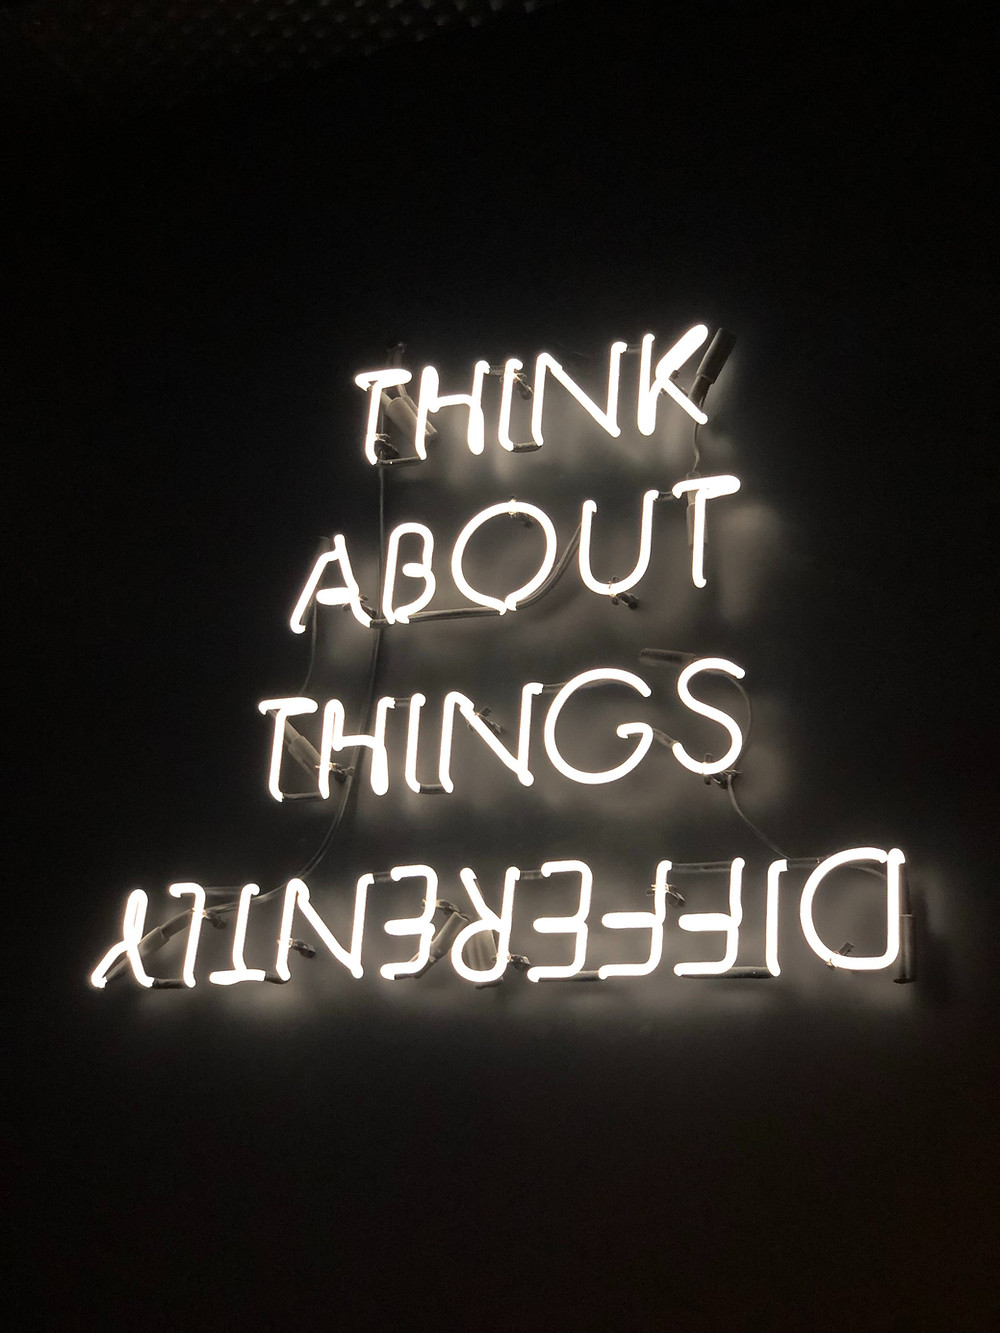 Black background, white neon sign that says Think about thinkgs differently